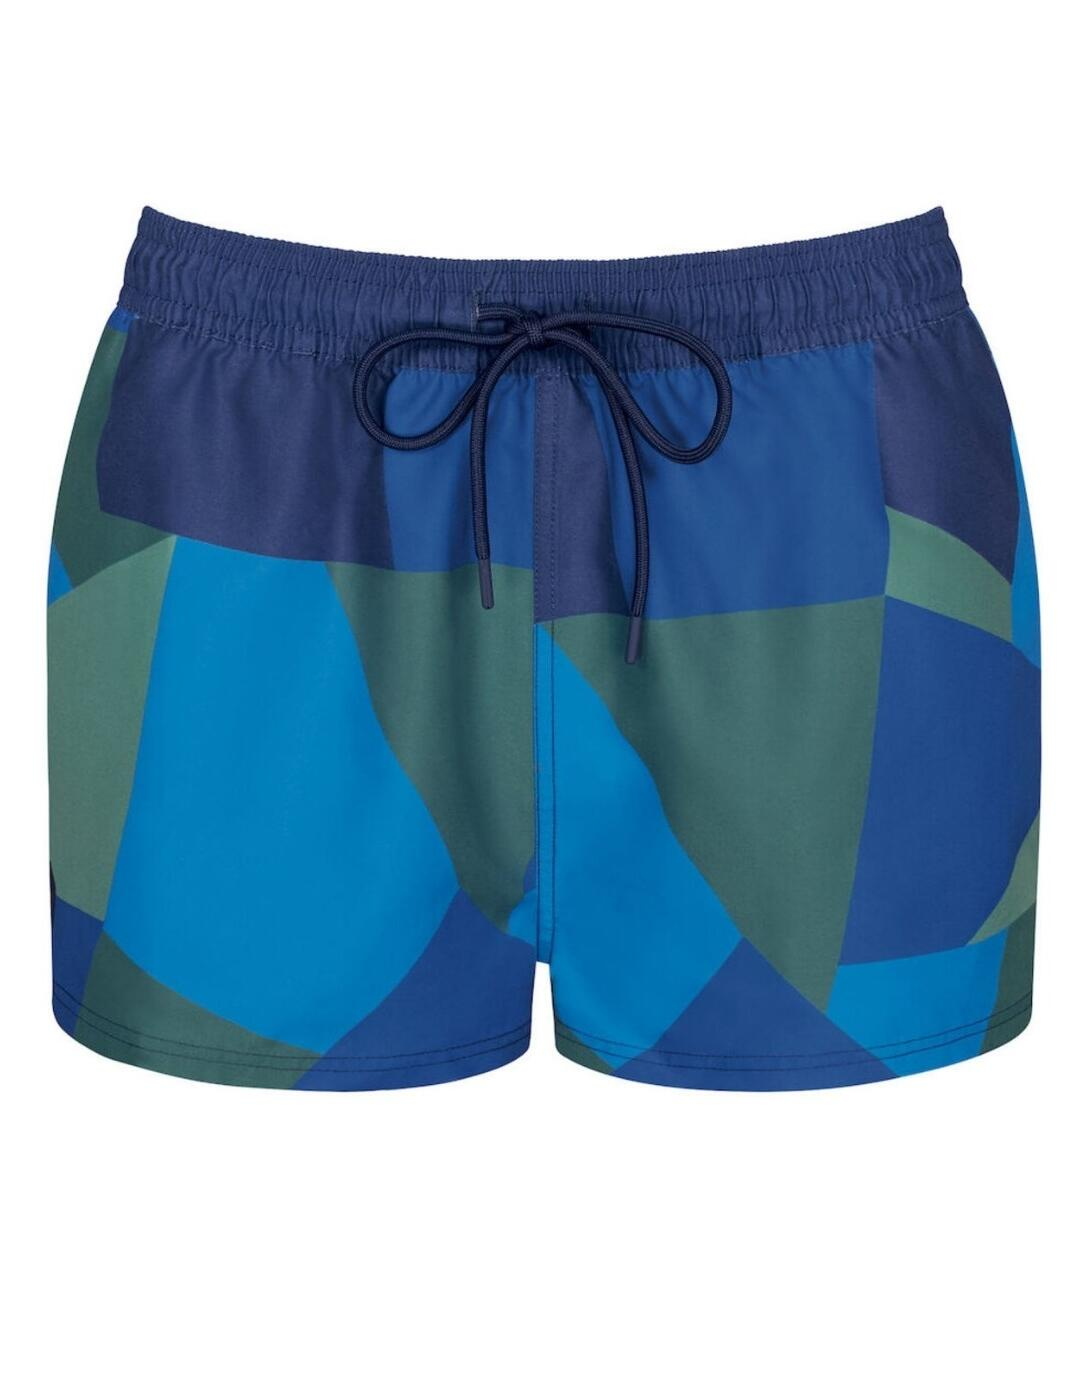 10207705 Sloggi Women Shore Short - 10207705 Blue/Dark Combination